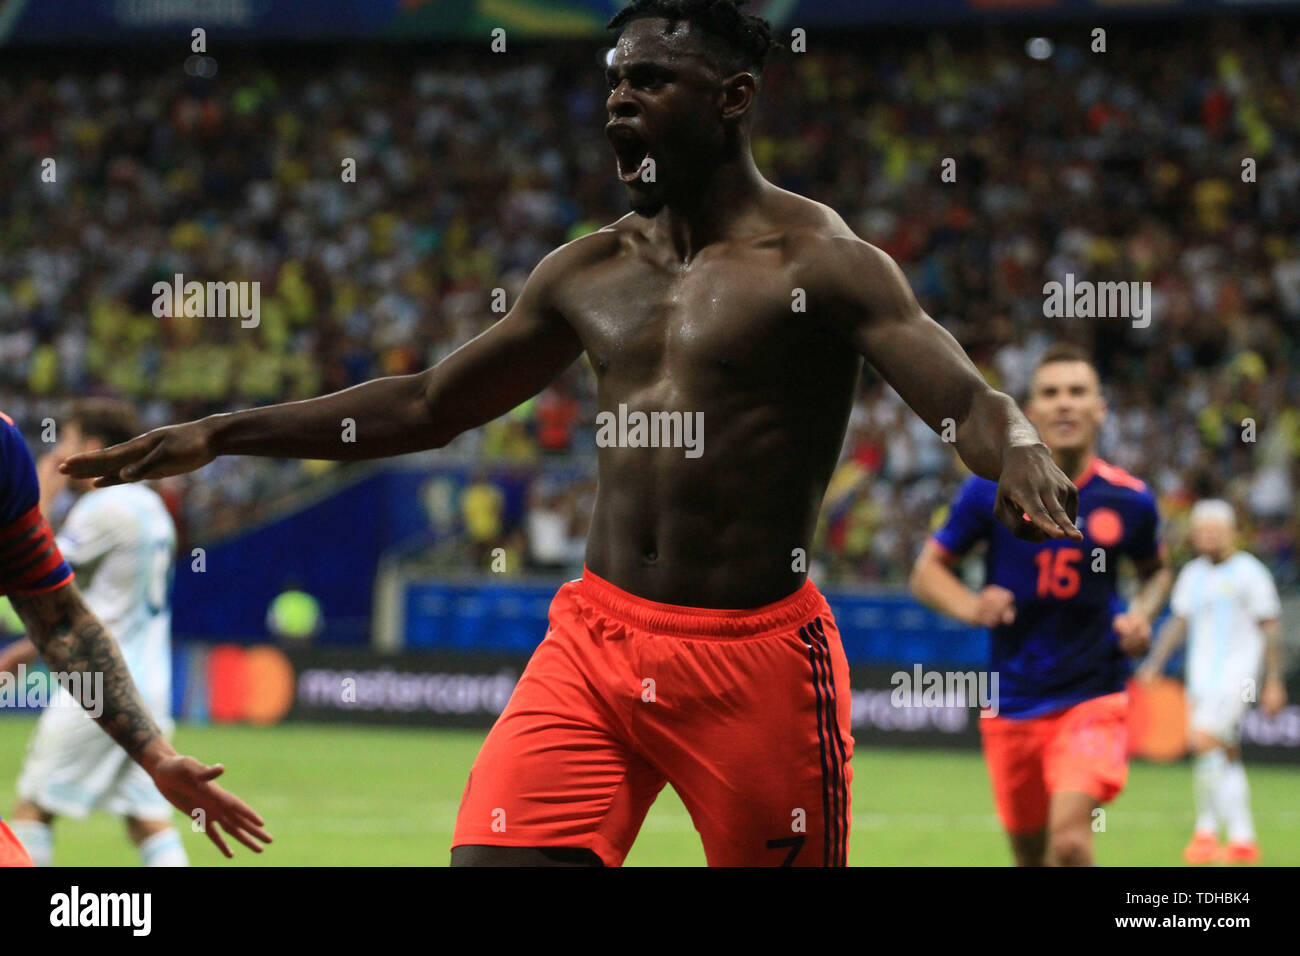 Salvador, Brazil. 15th June, 2019. Duván Zapata celebrates after scoring the second goal of Colombia, during match between Argentina and Colombia, game 03, valid for the group phase of Copa America 2019, held this Saturday, 15, at the Arena Fonte Nova in Salvador, BA. Credit: Mauro Akiin Nassor/FotoArena/Alamy Live News - Stock Image